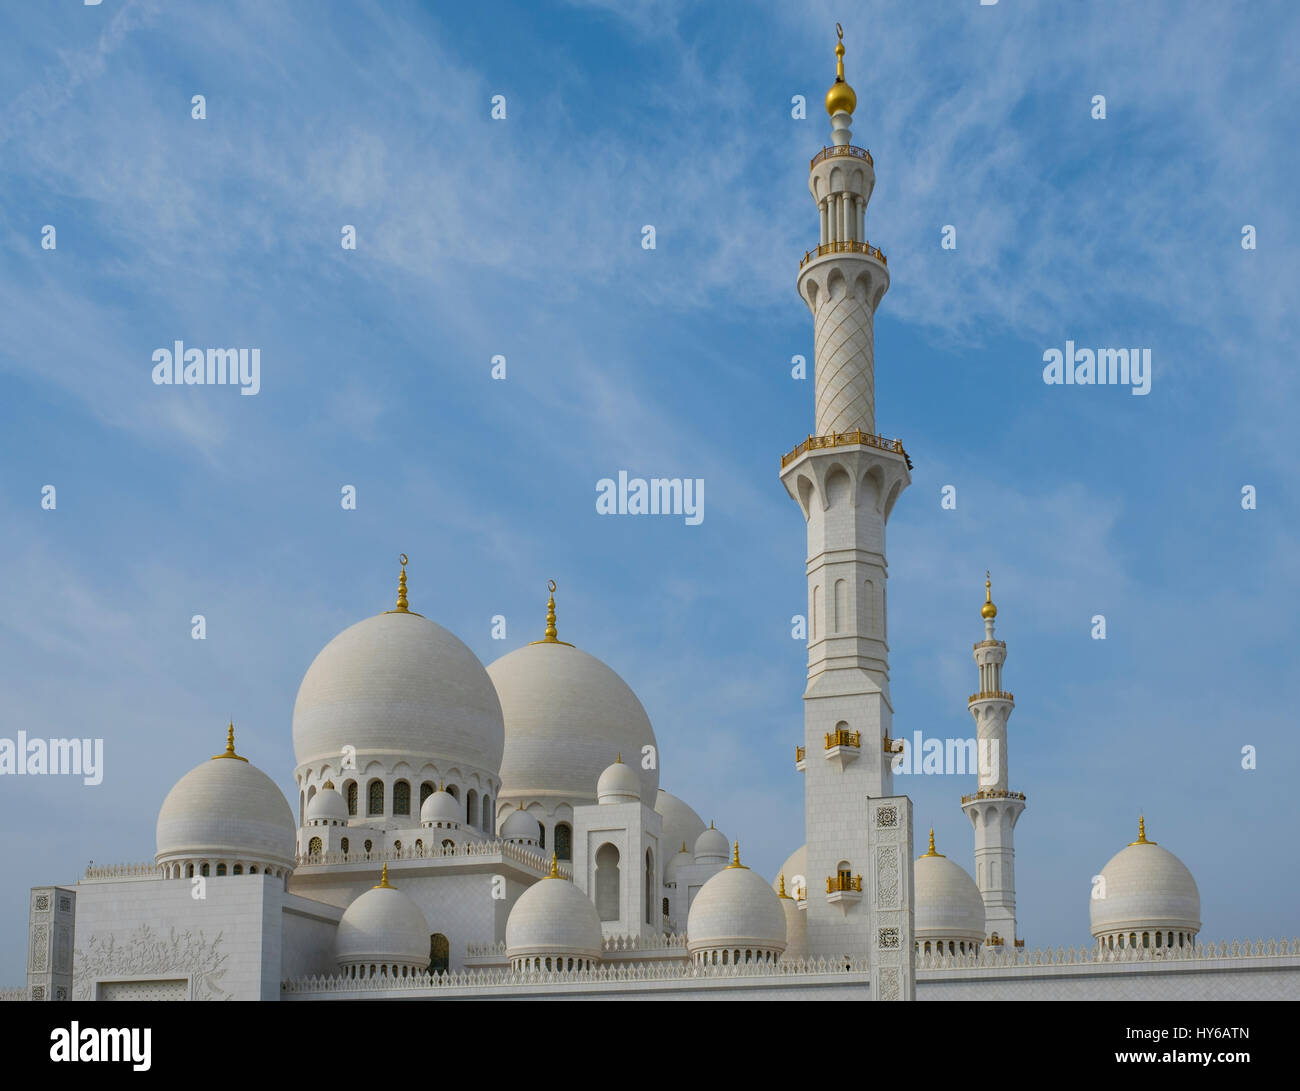 UNITED ARAB EMIRATES, ABU DHABI - CIRCA JANUARY 2017: View of the domes, cupolas and minaret of the Sheikh Zayed - Stock Image